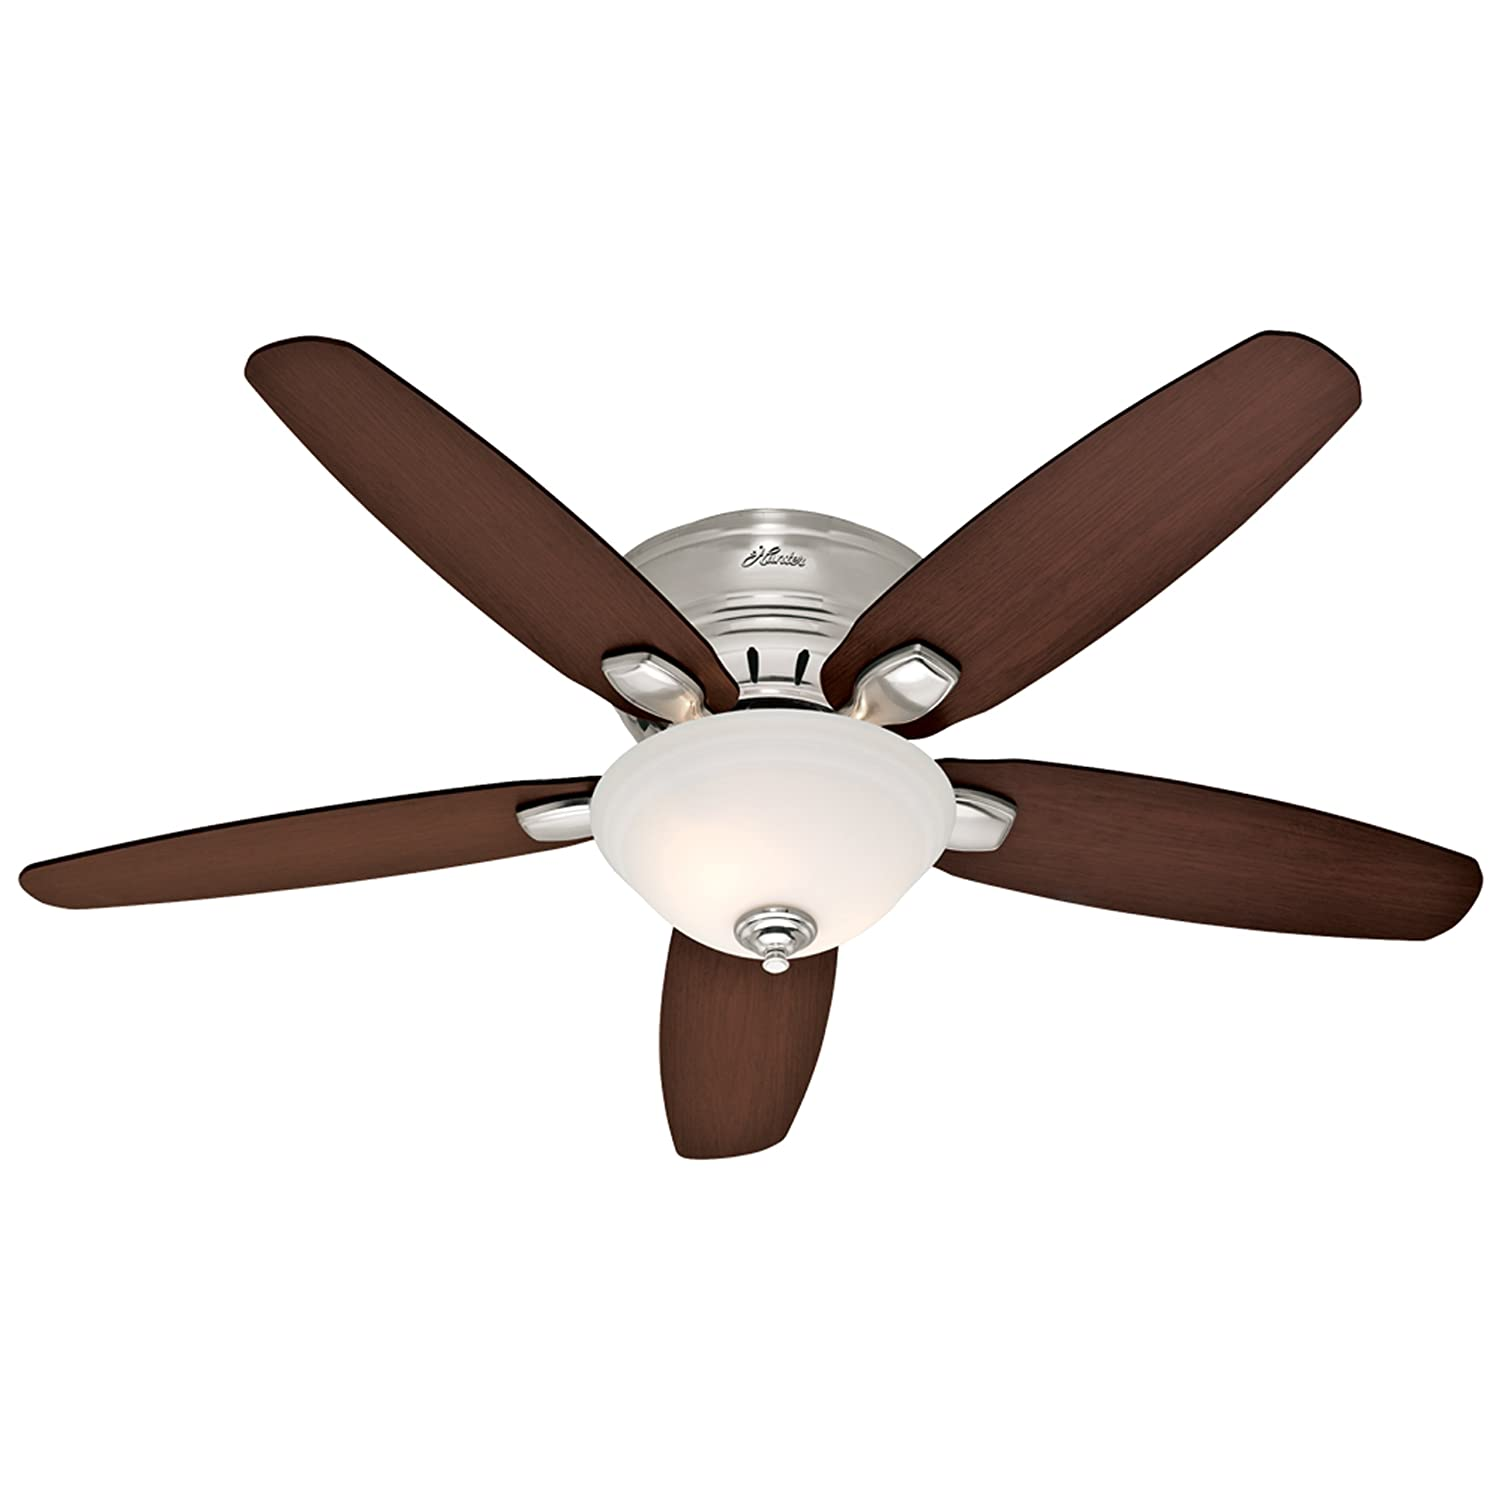 Hunter 28701 Fremont 52-Inch 5-Blade Single Light Ceiling Fan, Brushed Nickel with Roasted Walnut Stained Oak Blades and Frosted Glass Bowl